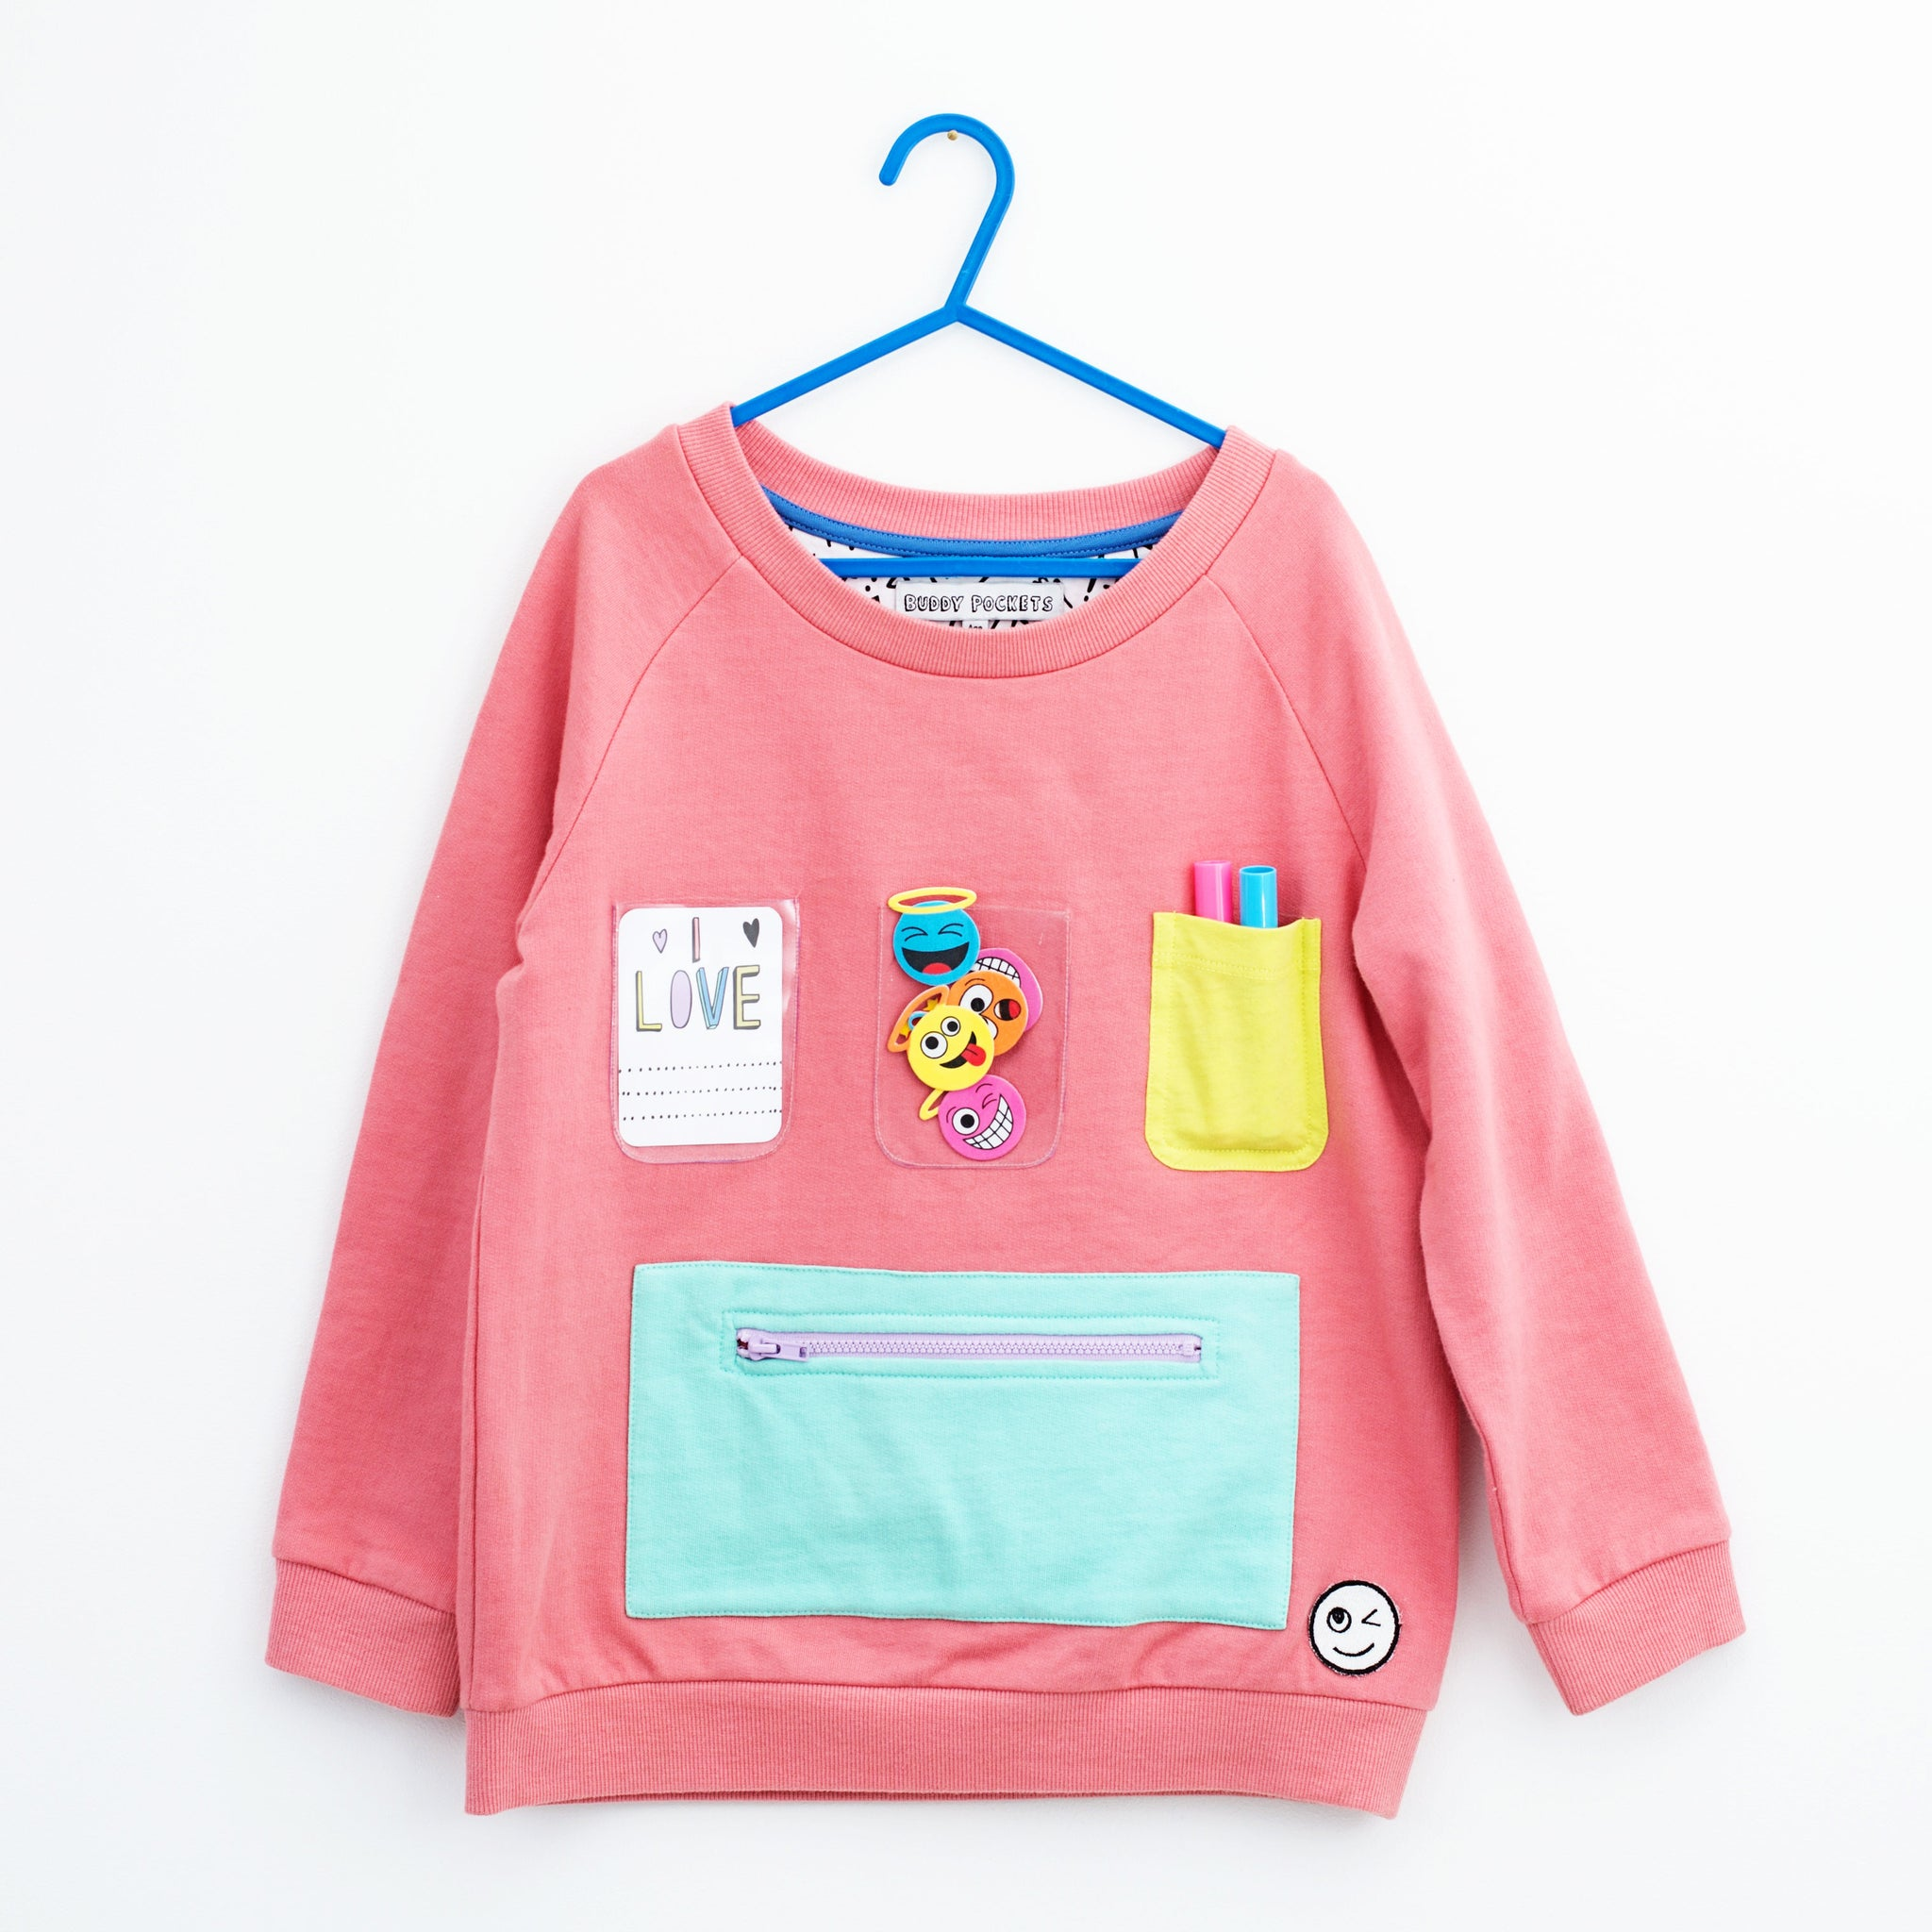 Show and Tell Sweatshirt - Coral